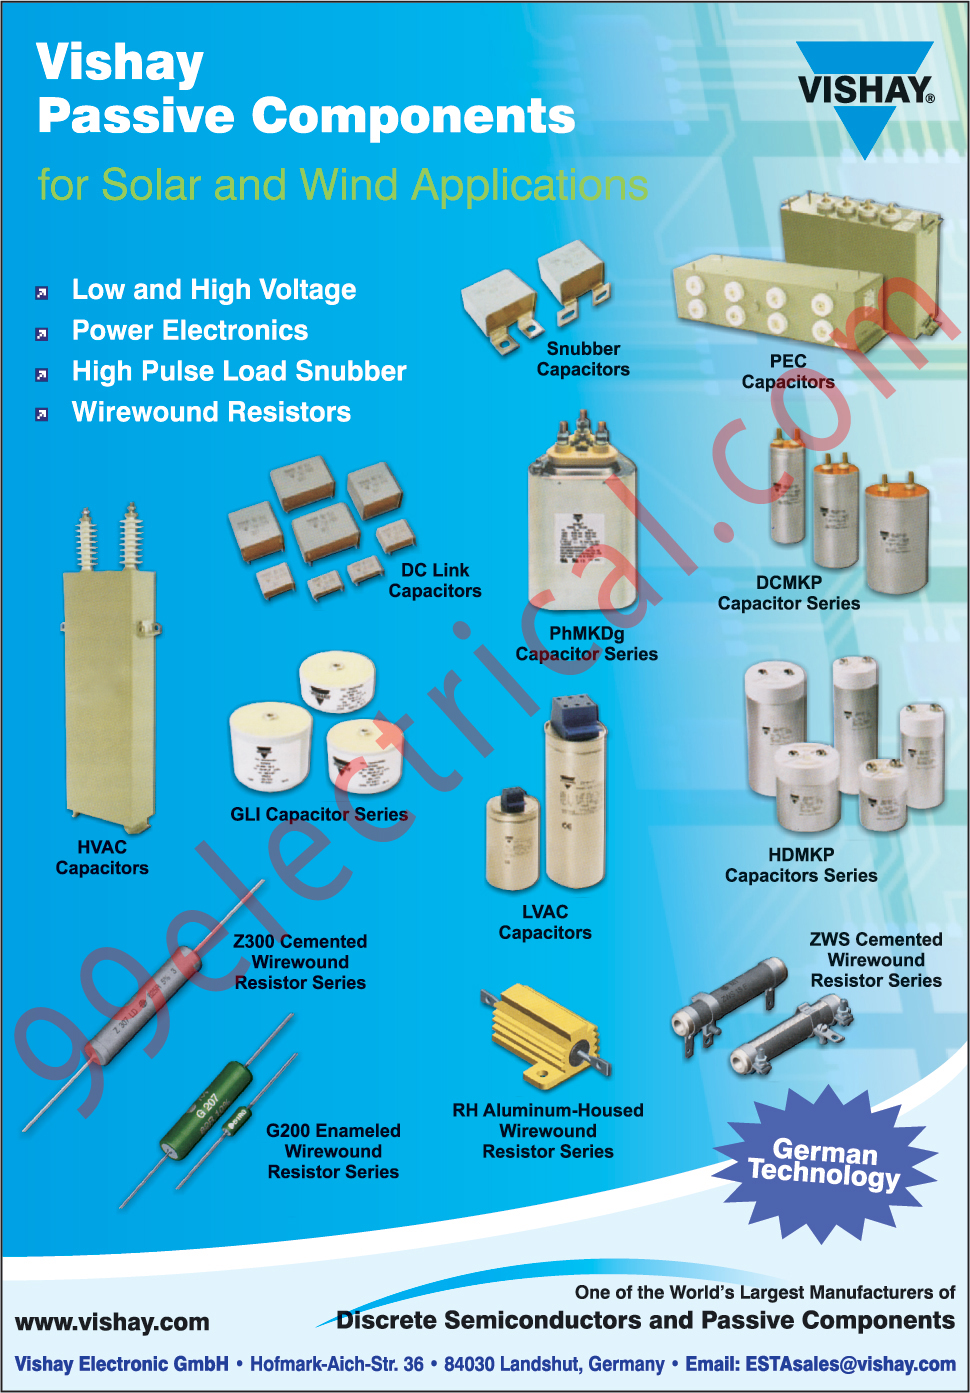 Electrical Parts, Capacitors, Discrete Semiconductors, Passive Components, Semiconductors, Wirewound Resistor, Resistor, Power Electronics, Snubber Capacitor, DC Link Capacitor, PEC Capacitors, HVAC Capacitors, GLI Capacitor, LVAC Capacitors,Semi Conductors